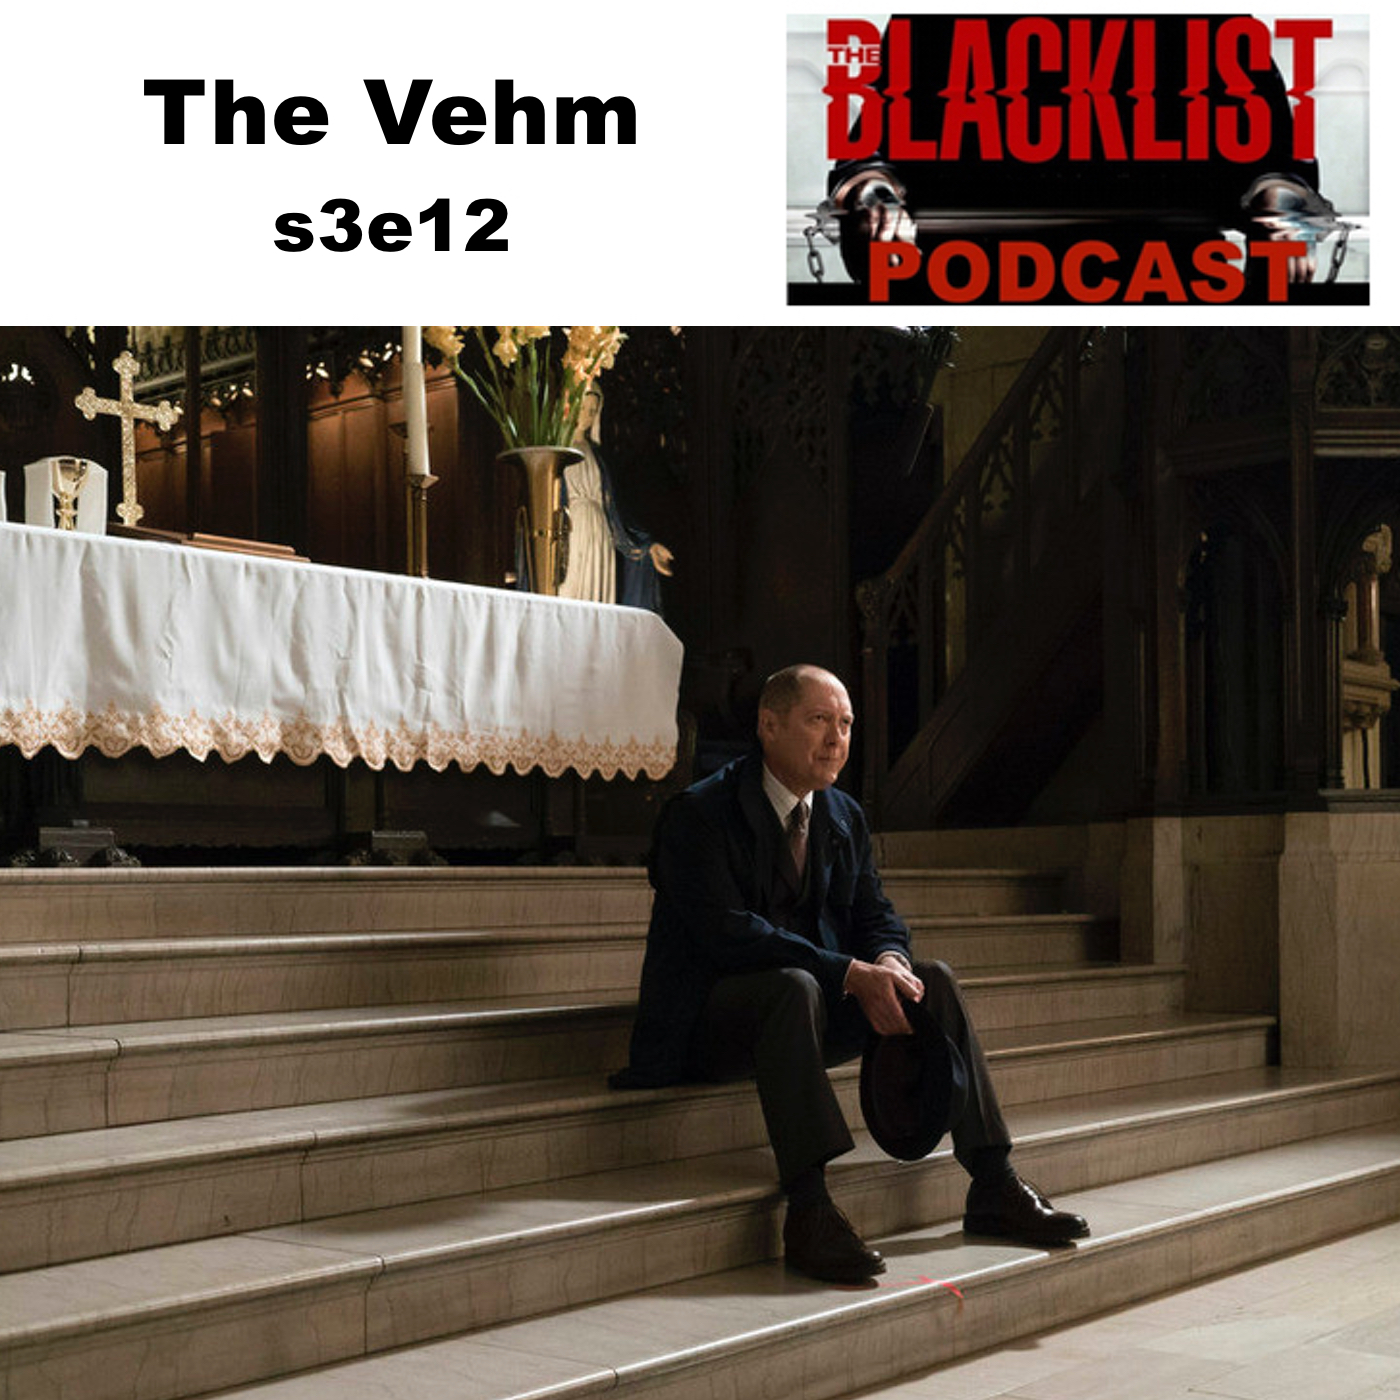 The Vehm s3e12  - The SMG Blacklist Podcast